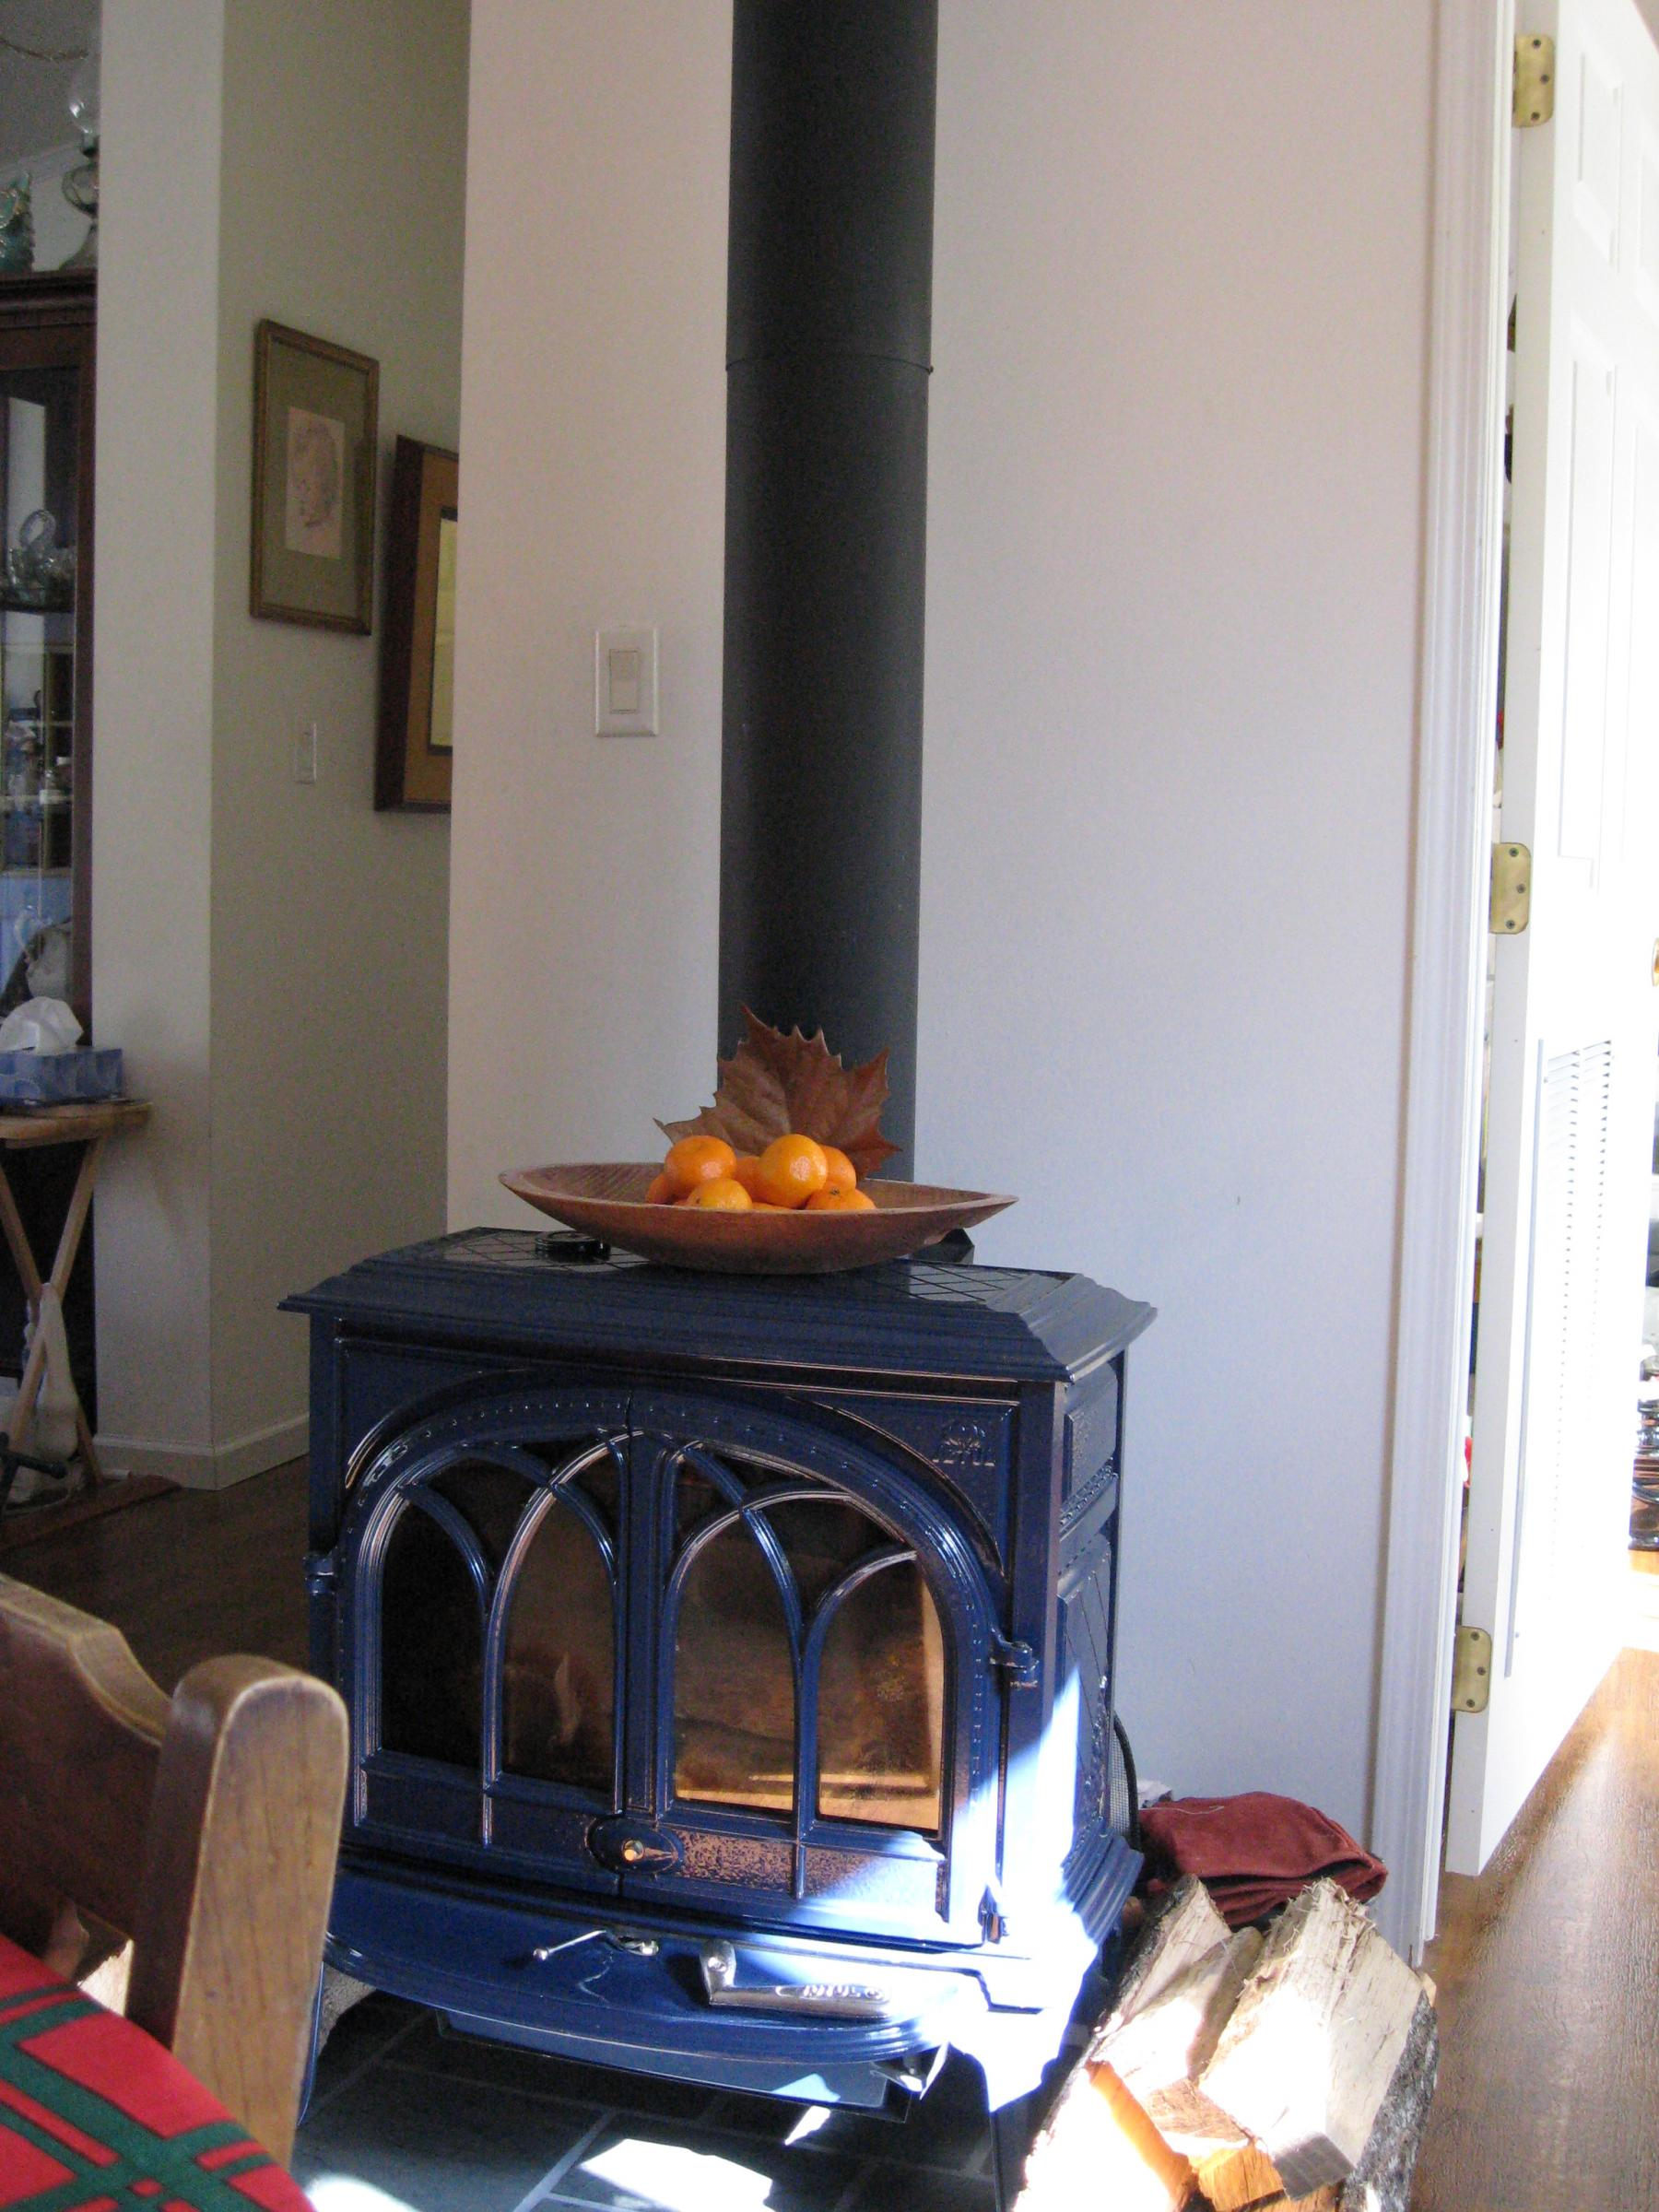 Jotul wood stove - heat for fun or emergencies